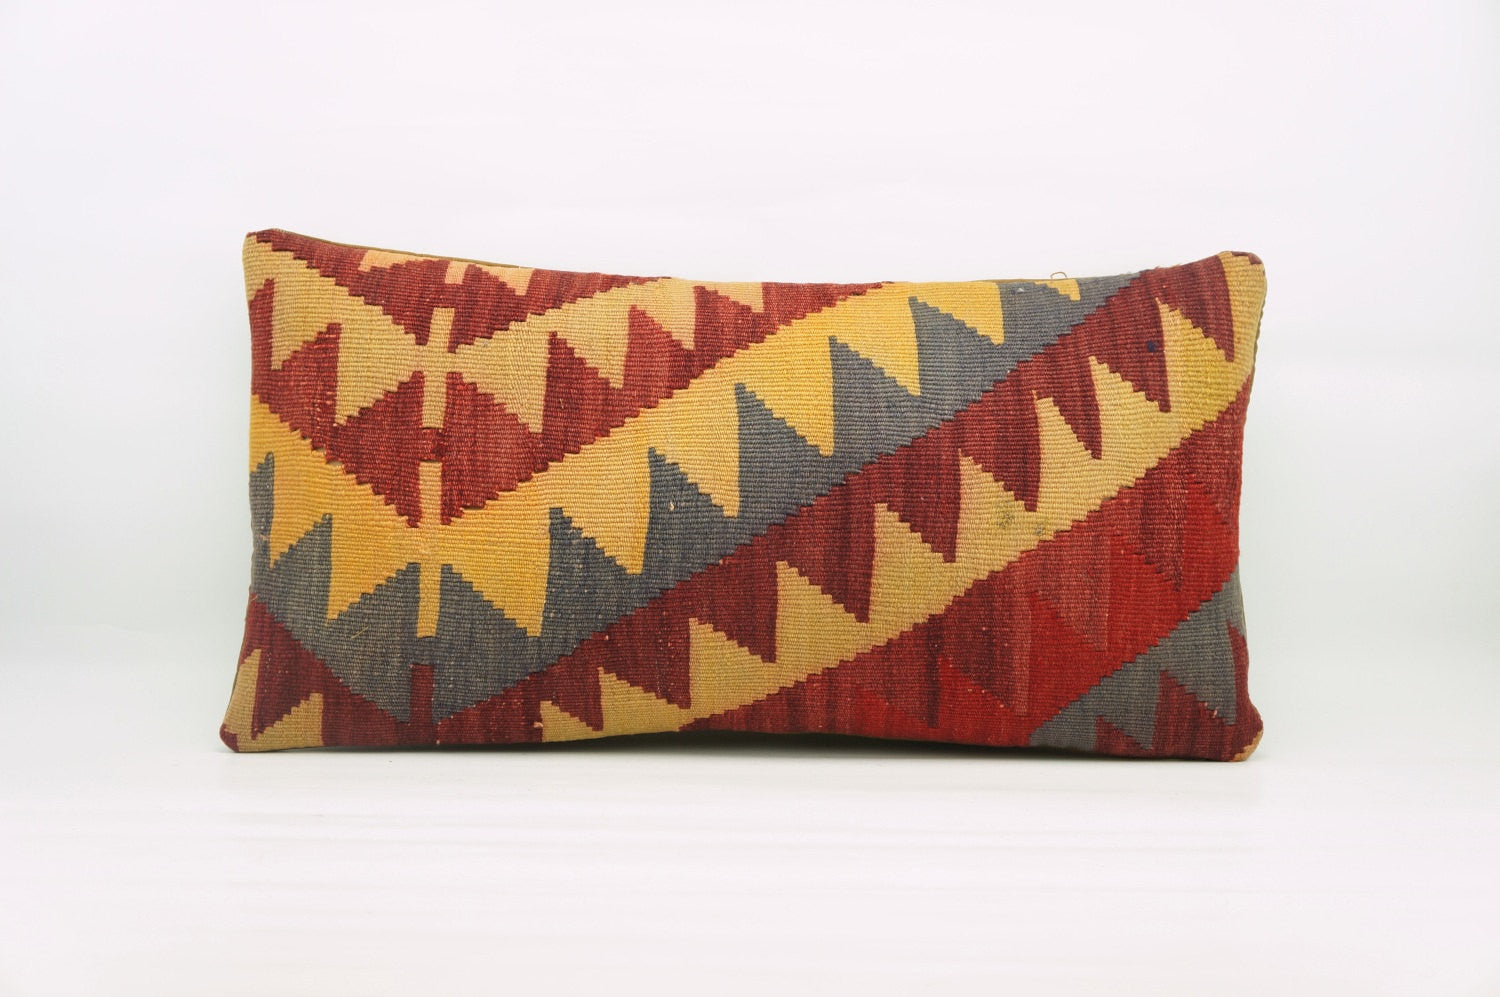 12x24  Red Yellow Gray Chevron cushion cover, Outdoor pillow case, Bohemian kilim pillow cover 1212 - kilimpillowstore  - 1